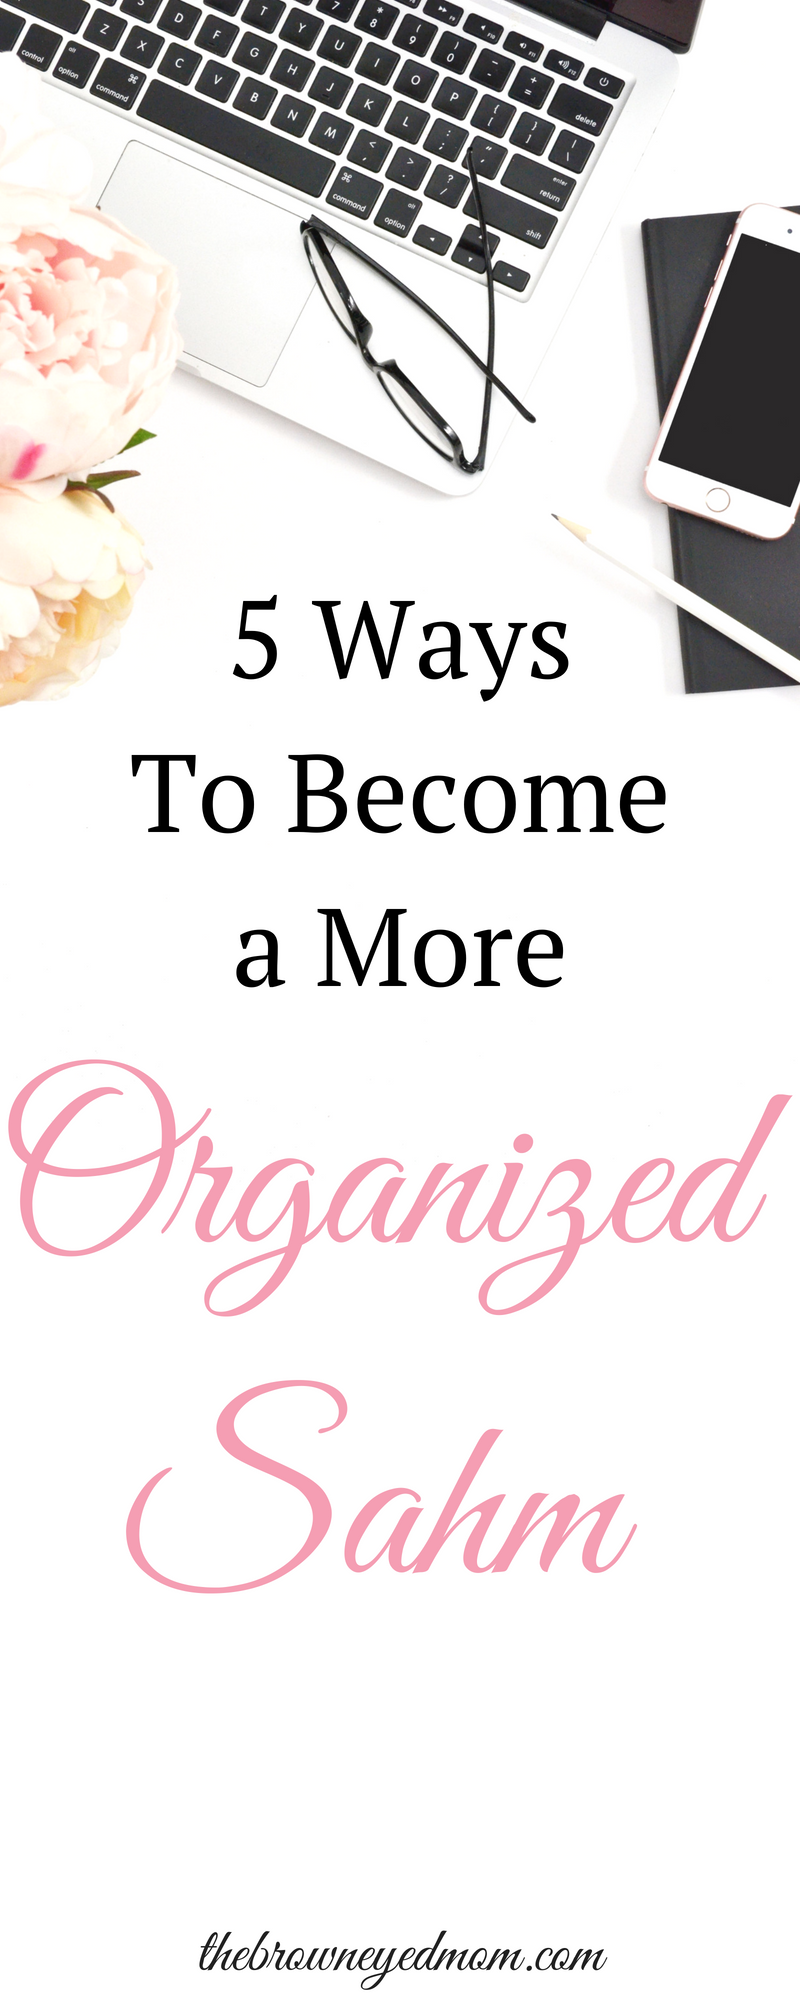 Are you dying to be a more organized SAHM? Here's 5 tips on how to get yourself better organized in your home! #organization #sahm